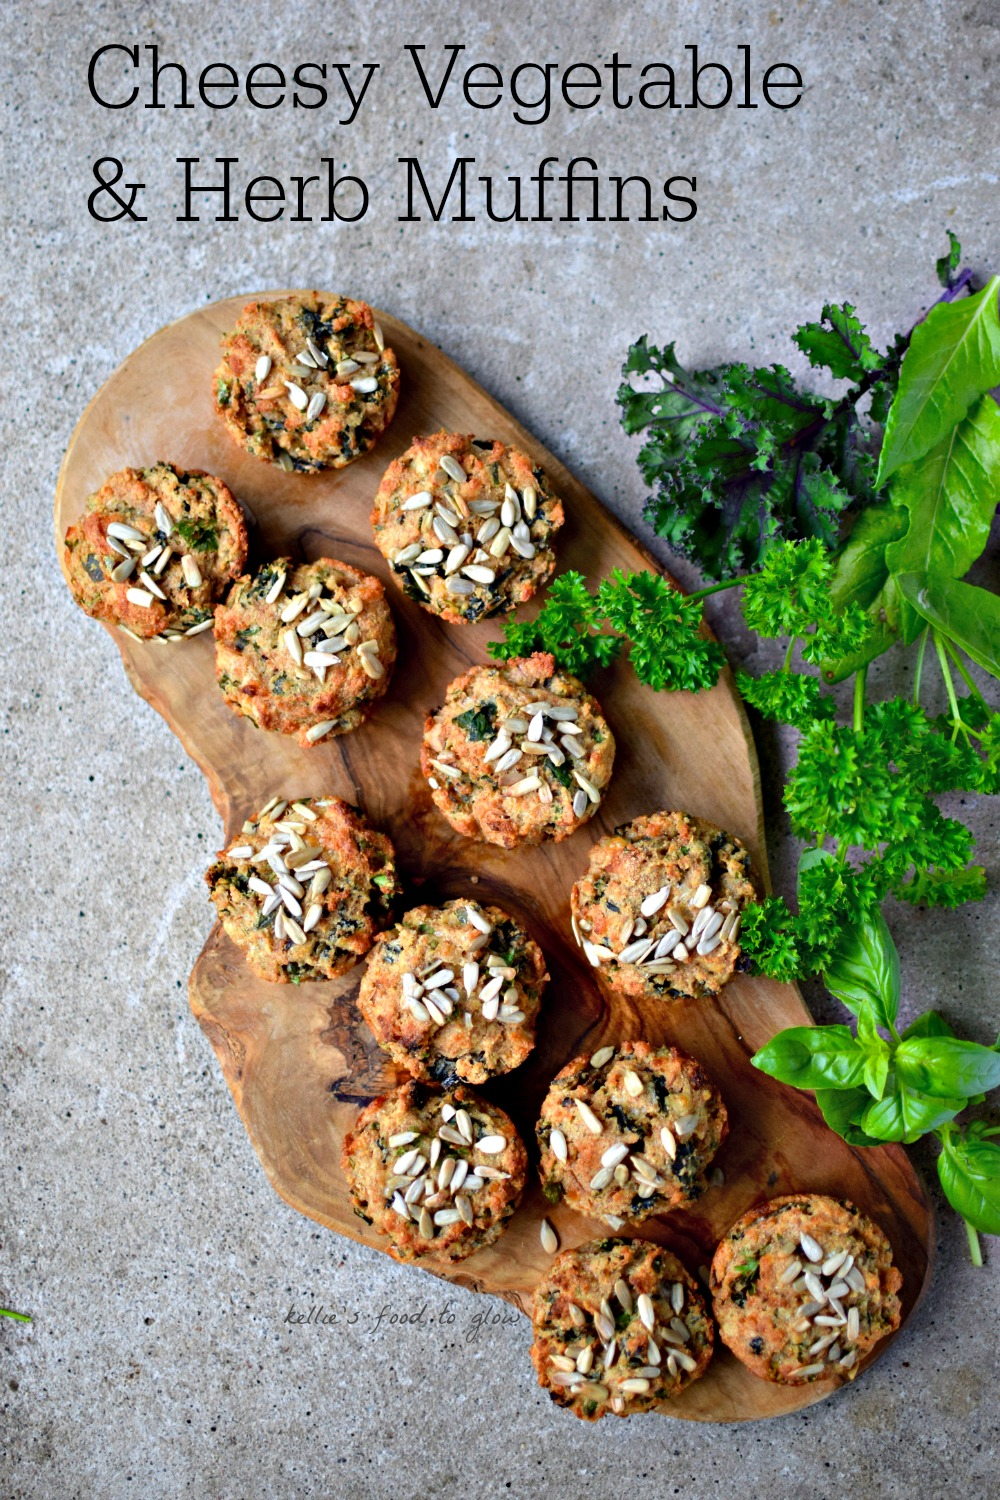 Cheesy Garden Vegetable & Herb Muffins - my nutritious, versatile lunchbox and healthy snack recipe. A perfect protein and fiber-packed mini-meal for traveling, too. kelliesfoodtoglow.com